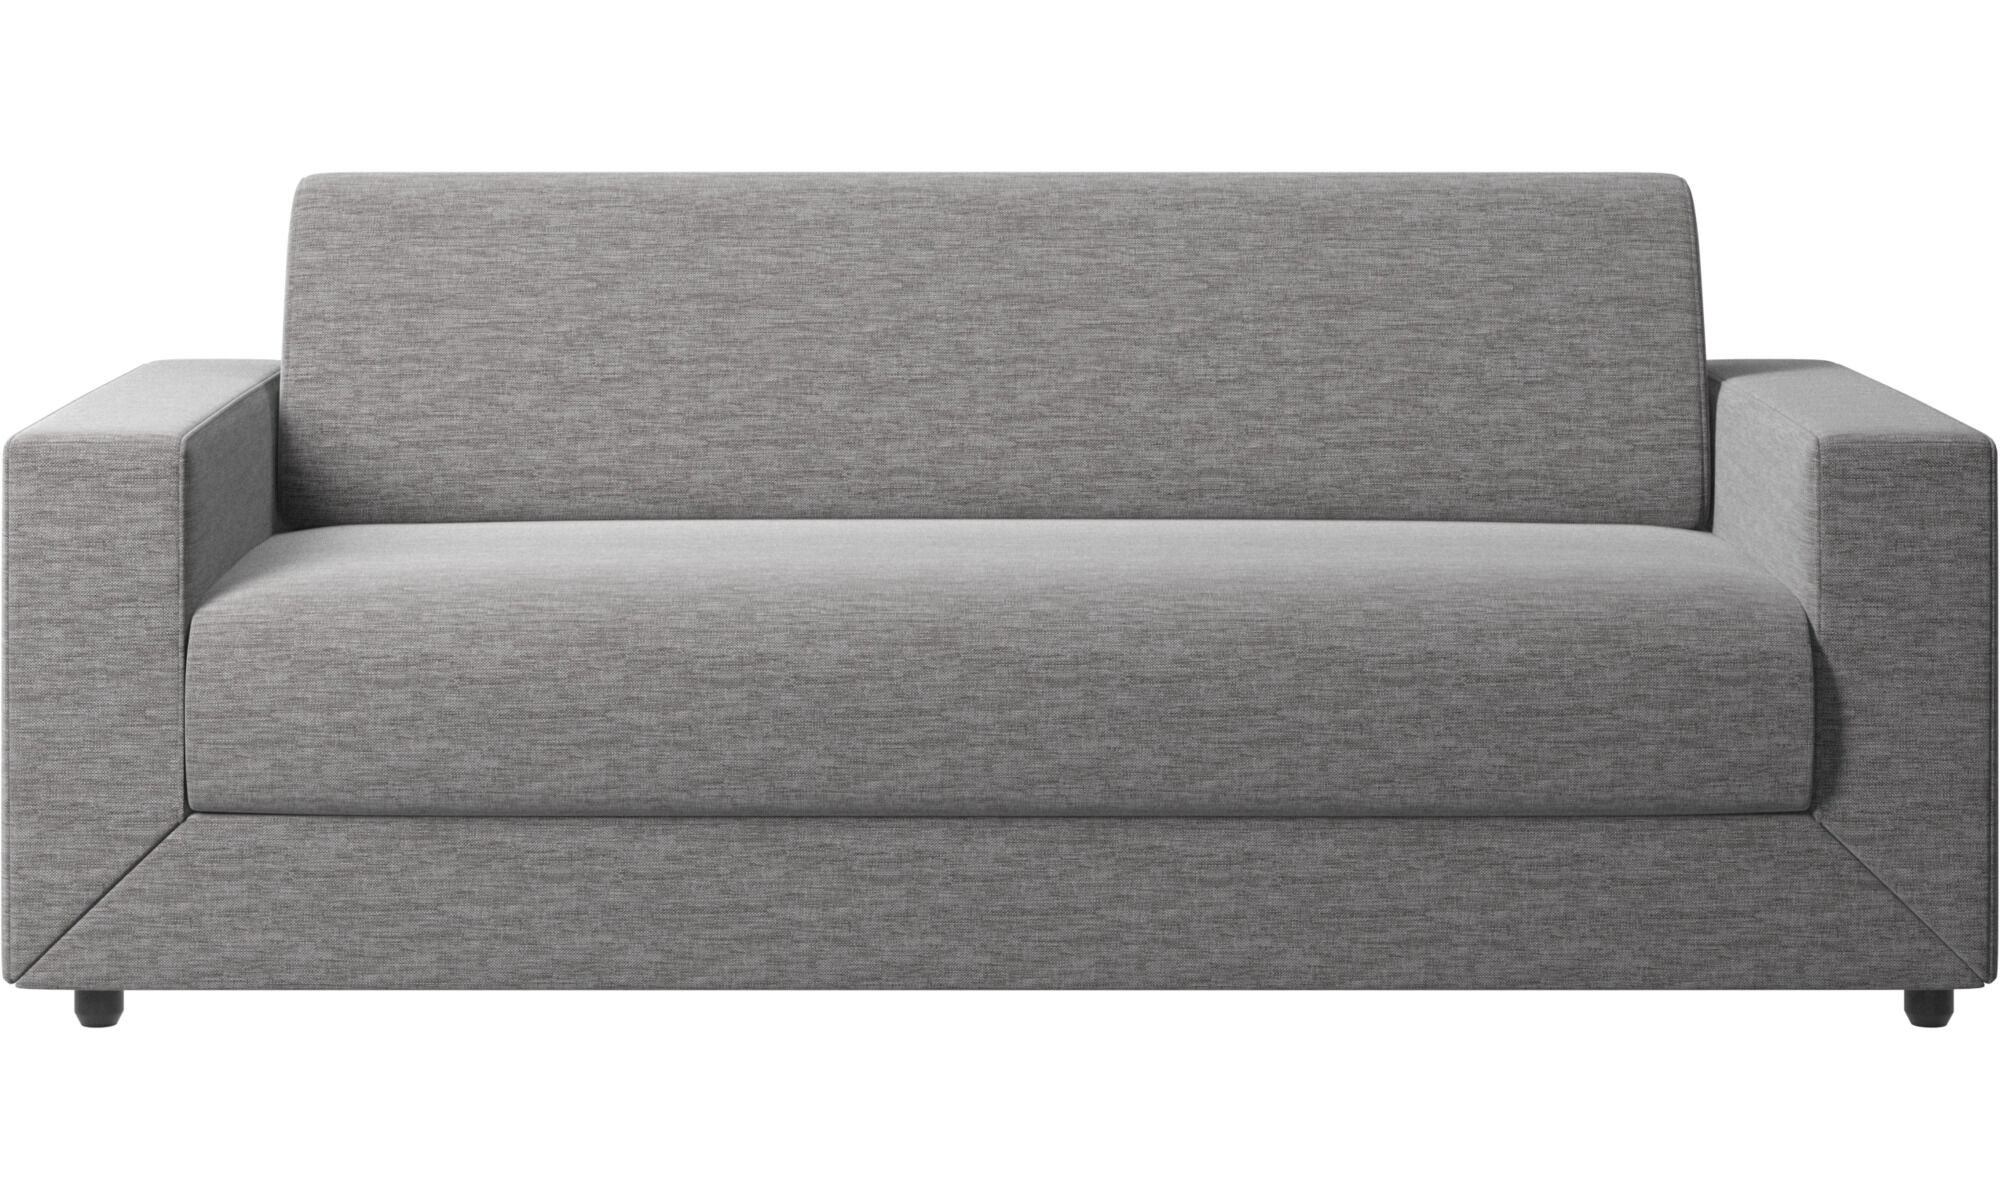 Sofa Beds   Stockholm Sofa Bed   Gray   Fabric